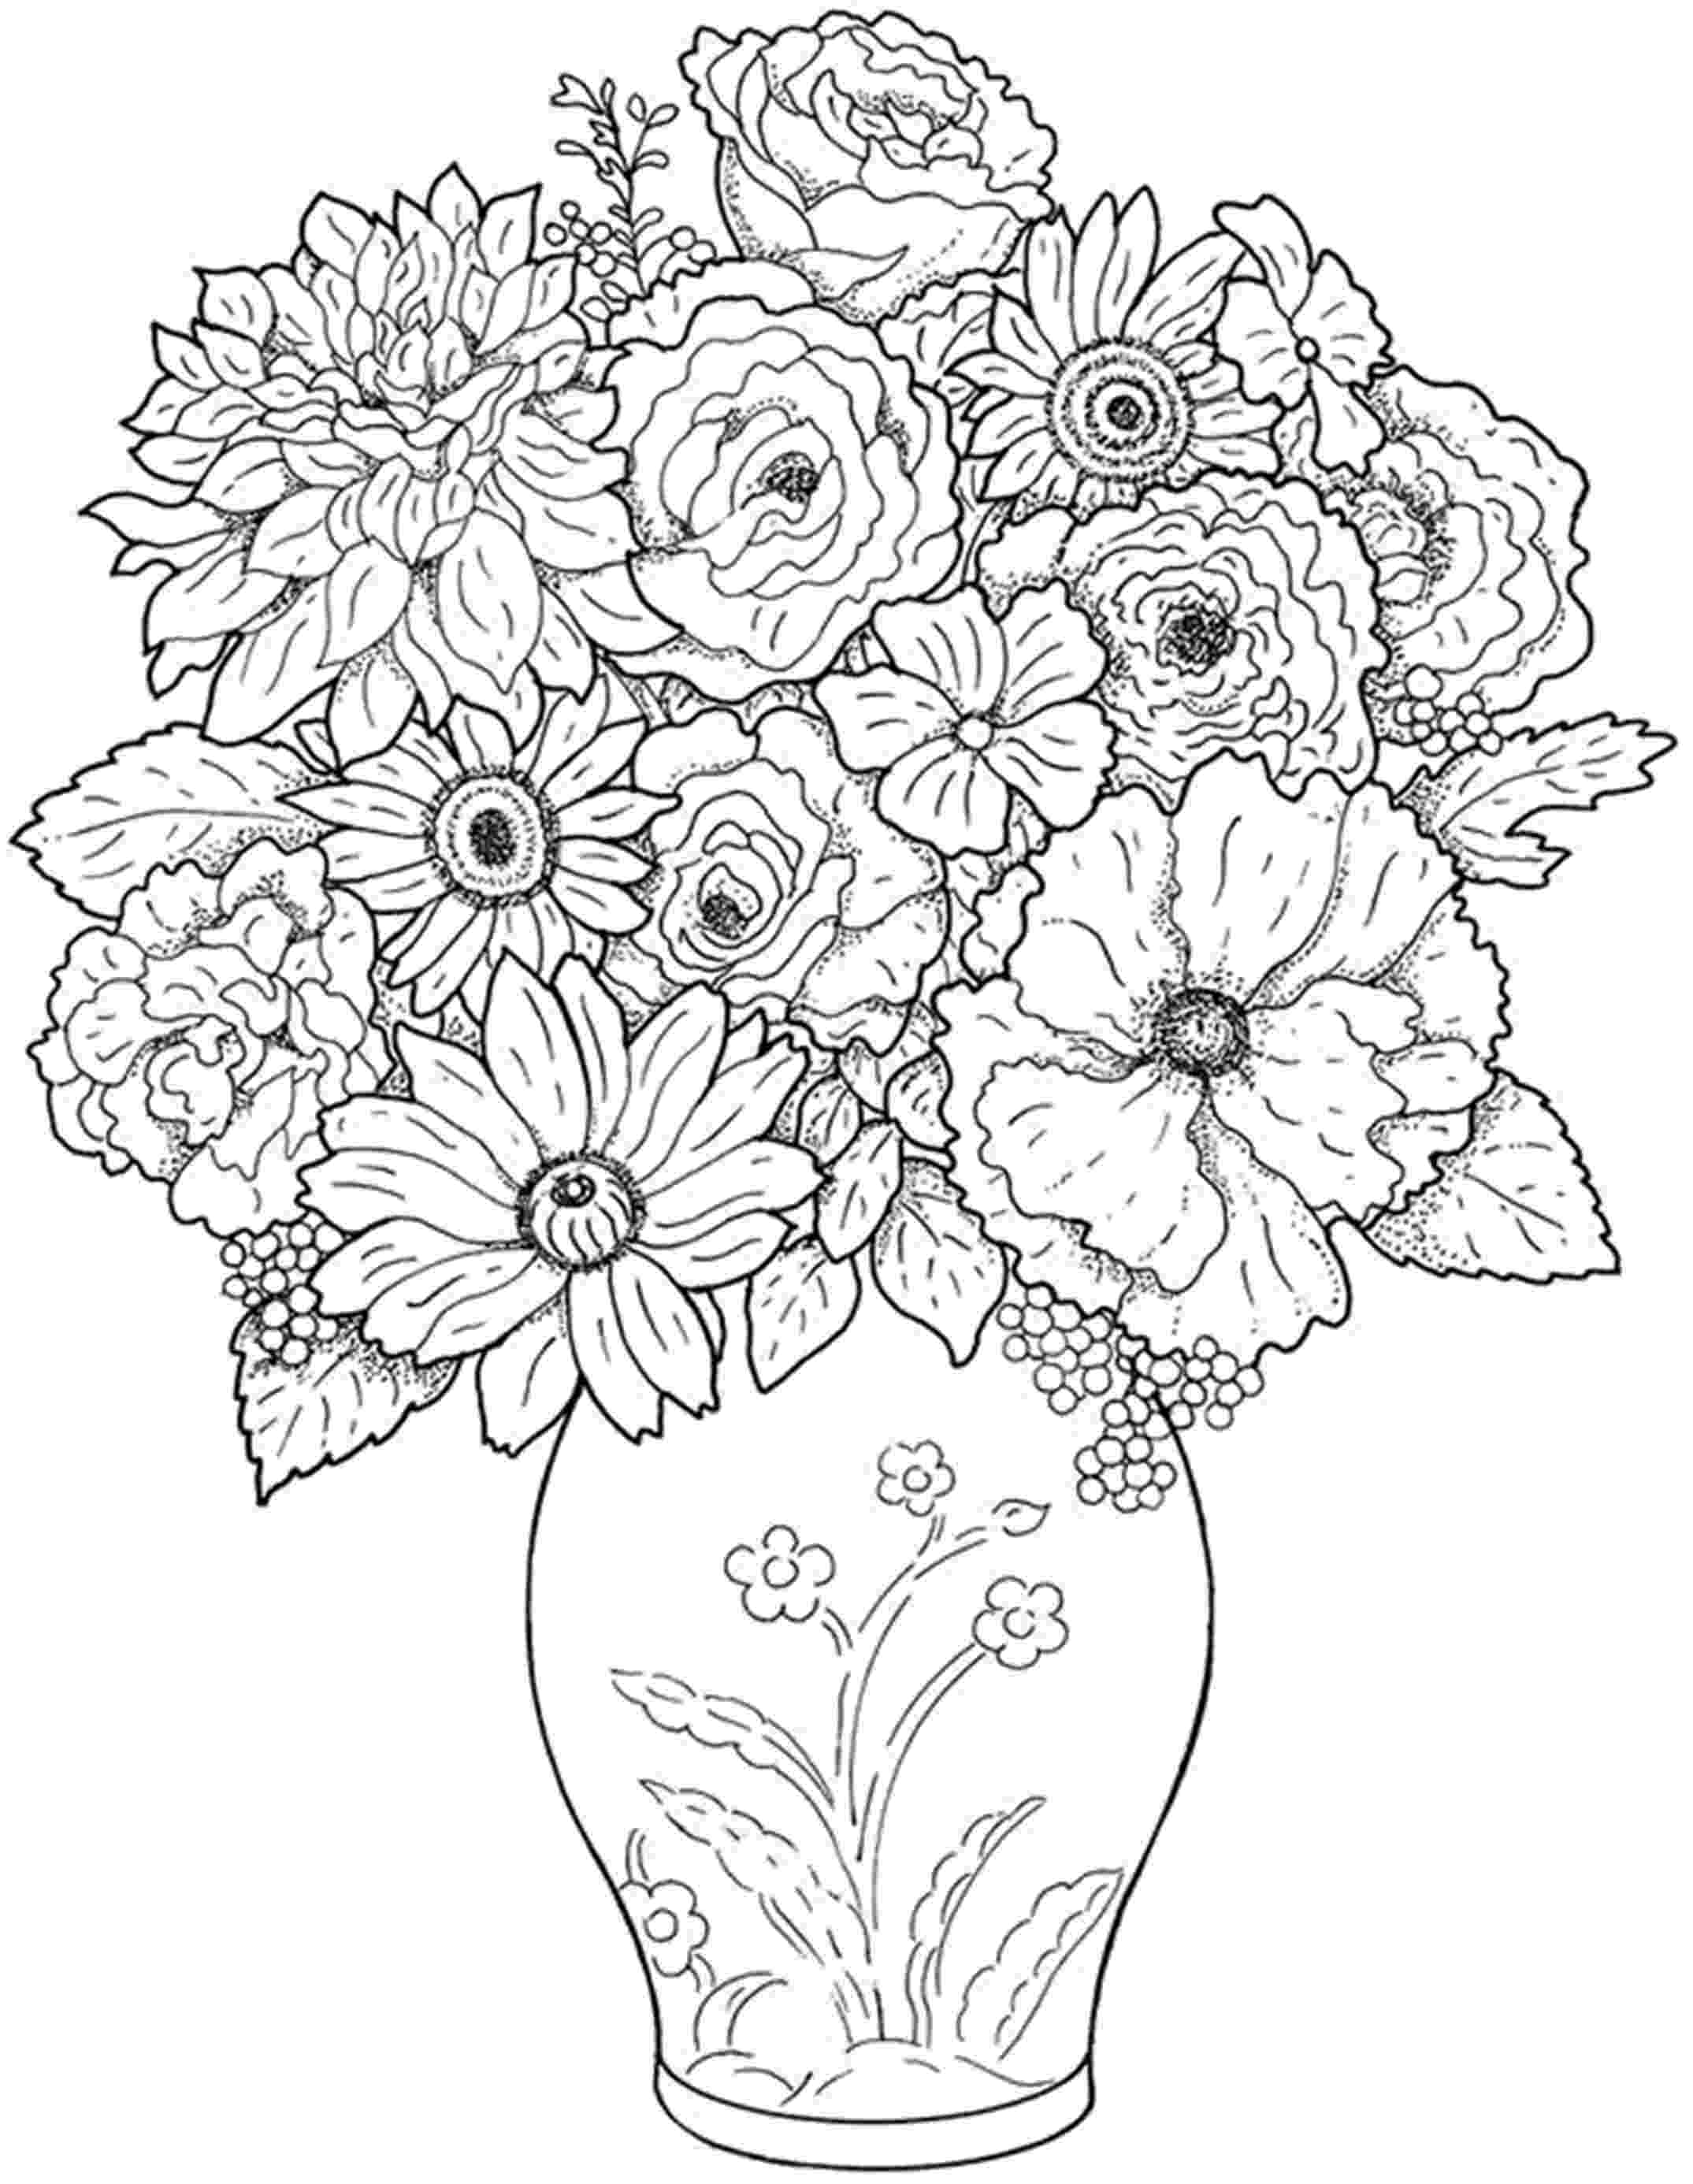 flower images to color spring flower coloring pages to download and print for free color to flower images